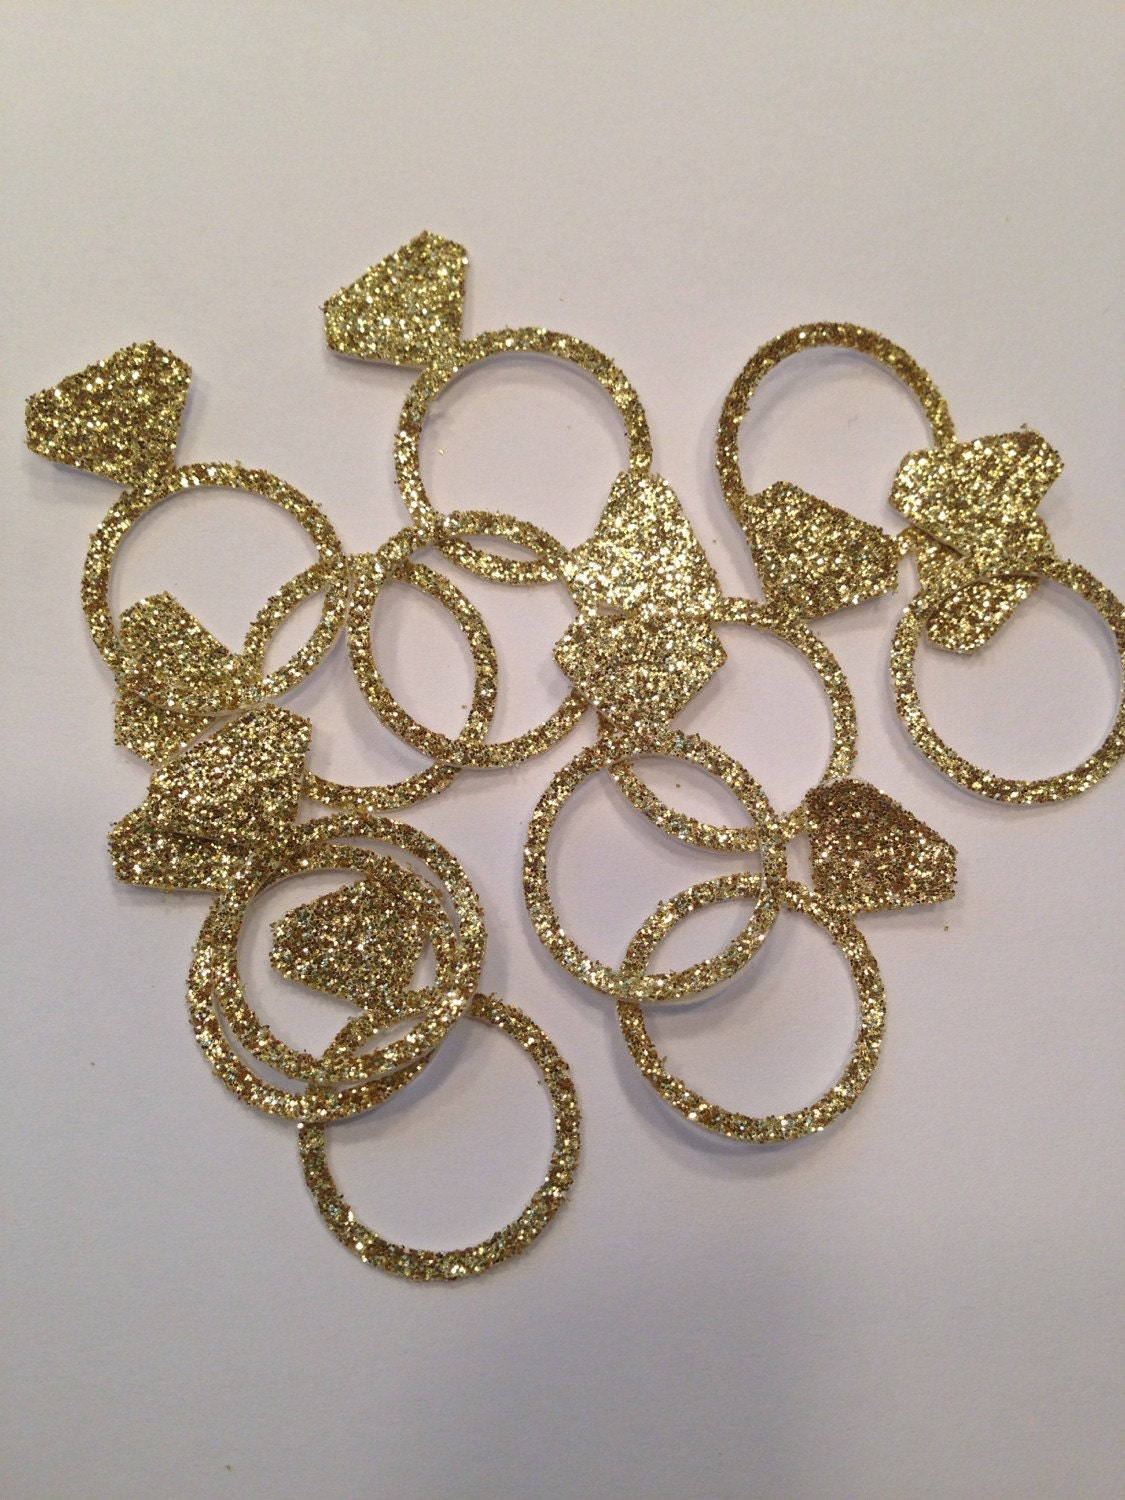 Engagement ring confetti gold confetti glitter confetti for 5 golden rings decorations